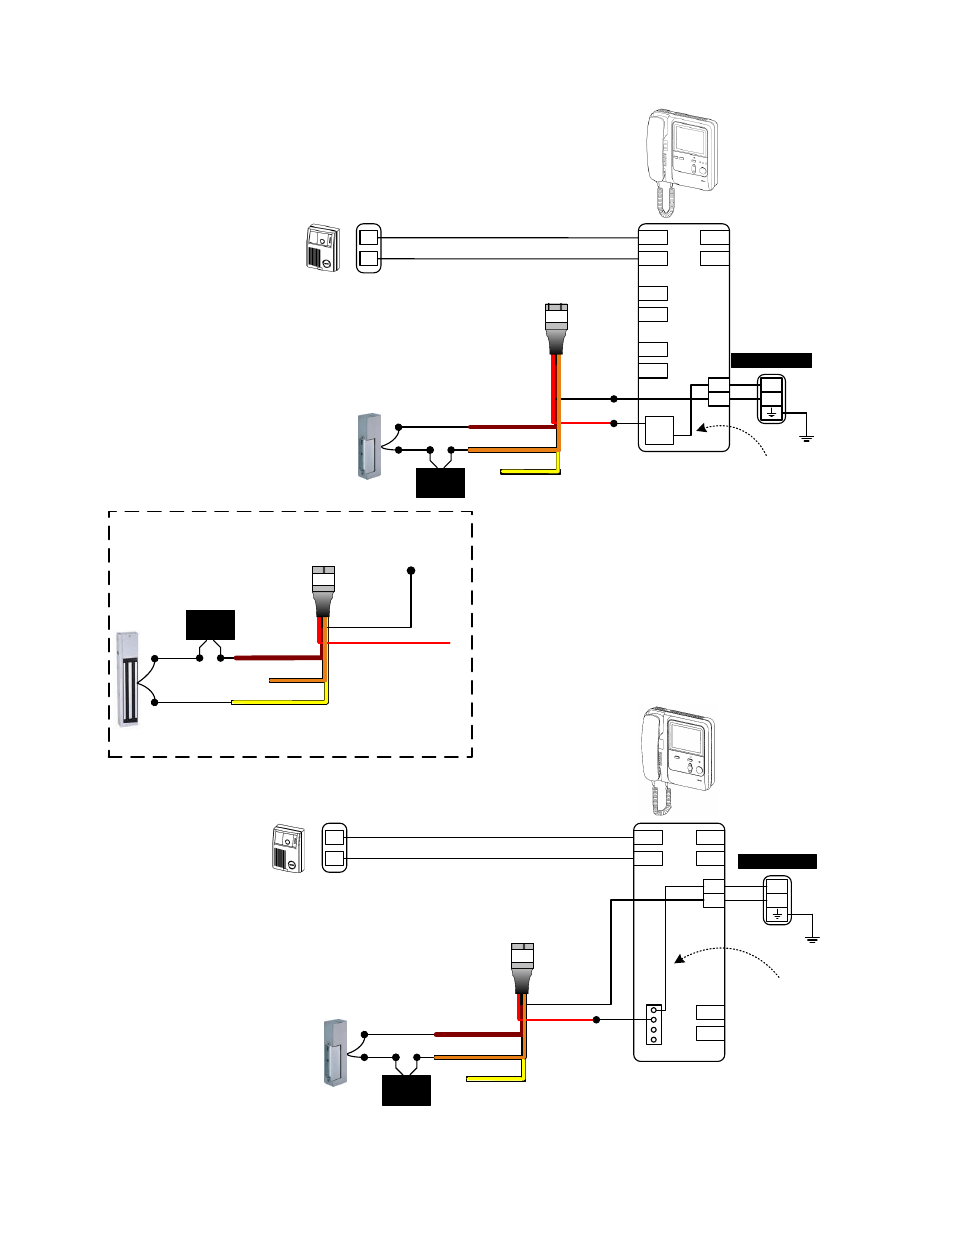 aiphone door release relay module ry 24l page2?resize\\\=665%2C861 everfocus wire diagram everfocus wiring diagrams hid edge evo wiring diagram at bayanpartner.co